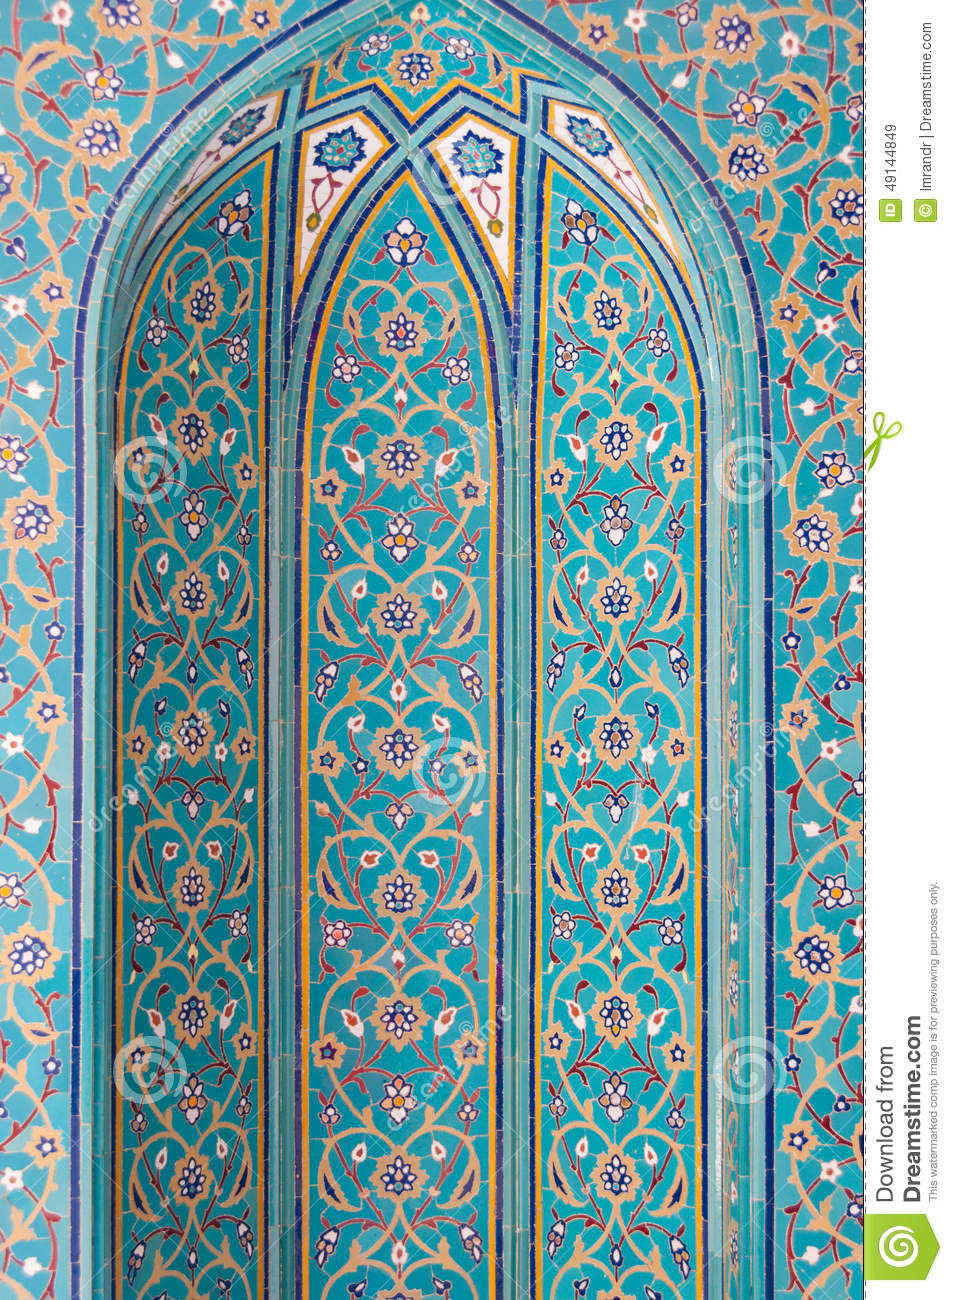 Mosaic Tiles Of Middle Eastern Architecture Stock Image